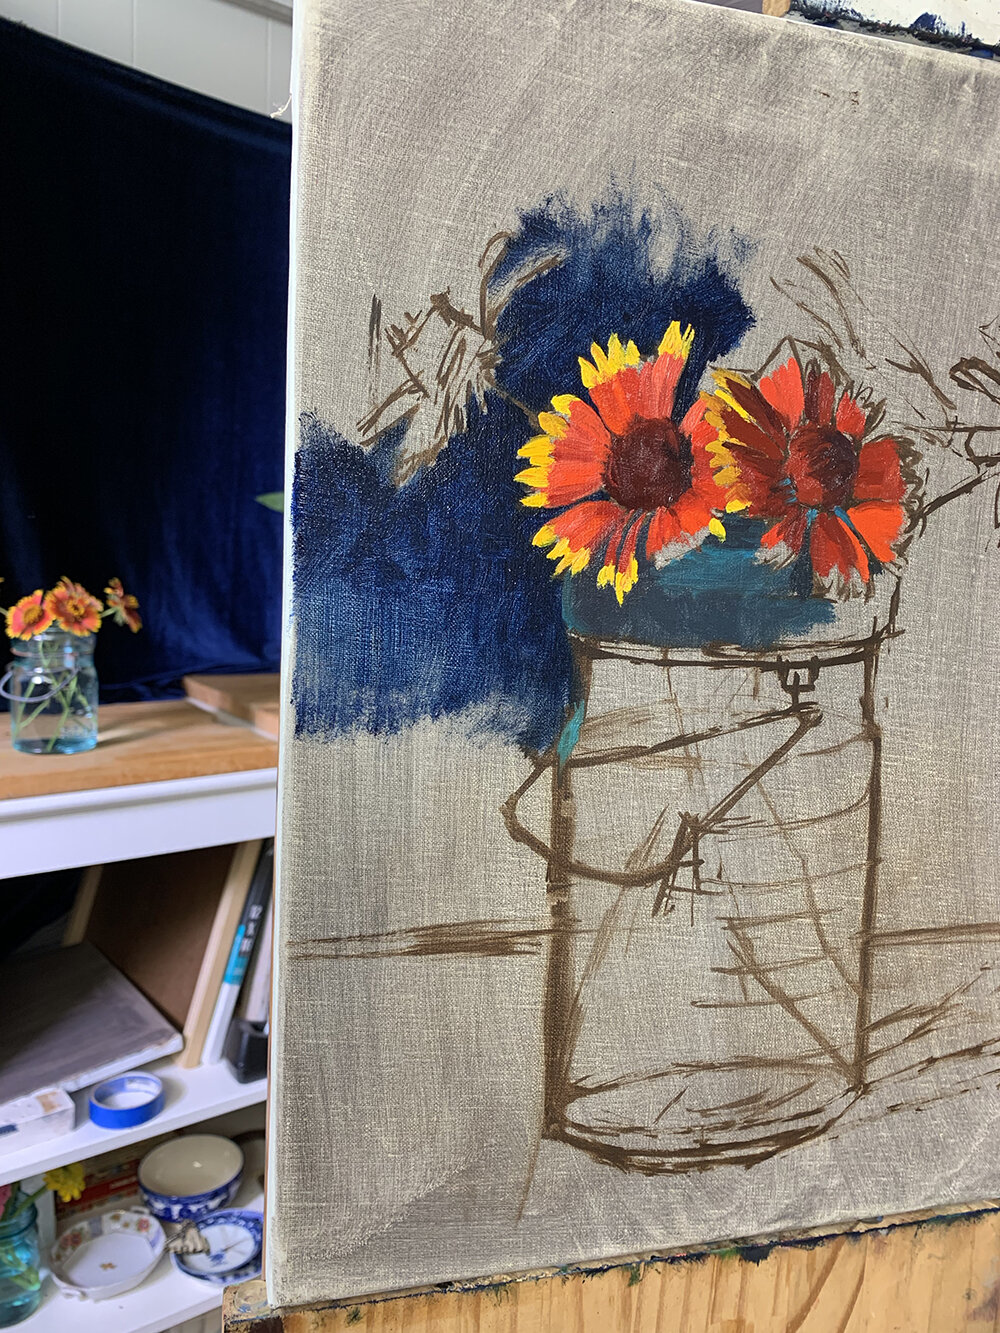 Day 241, August 27, 2019: Began this painting of Indian Blanket Flowers. Love the bright flowers in front of the deep blue background. ( Available )